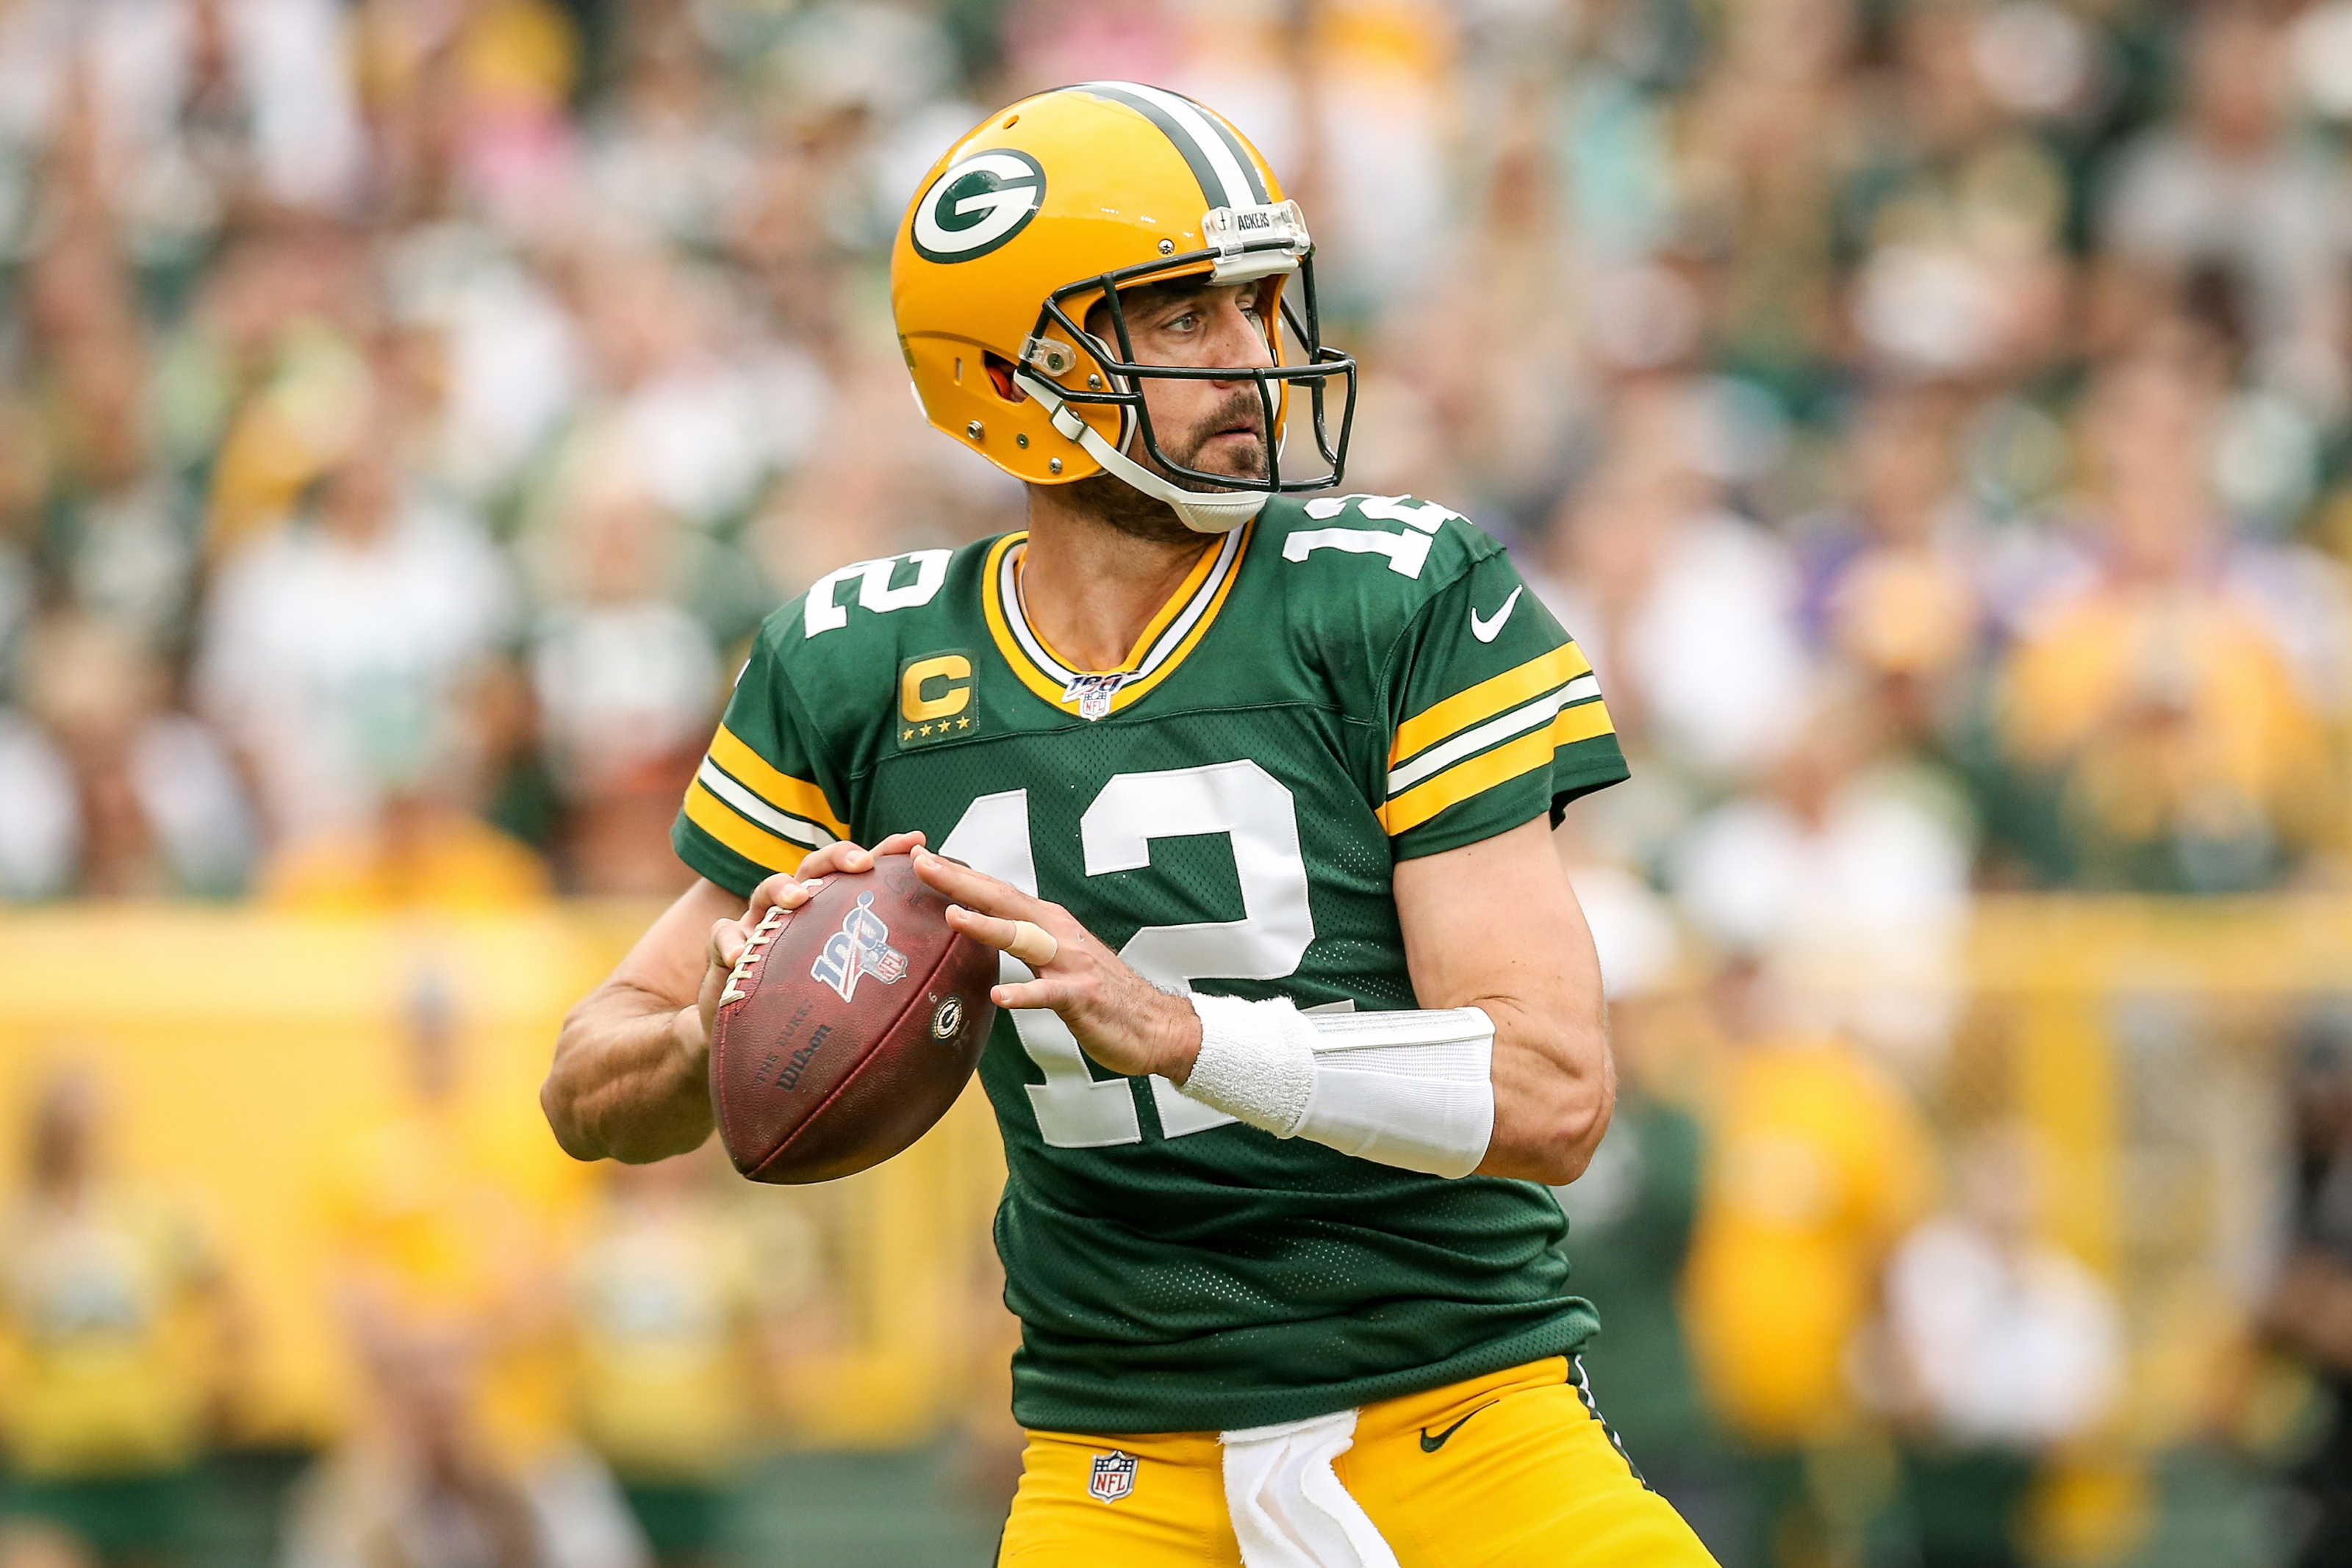 In 2020, as Aaron Rodgers goes, so will the Green Bay Packers